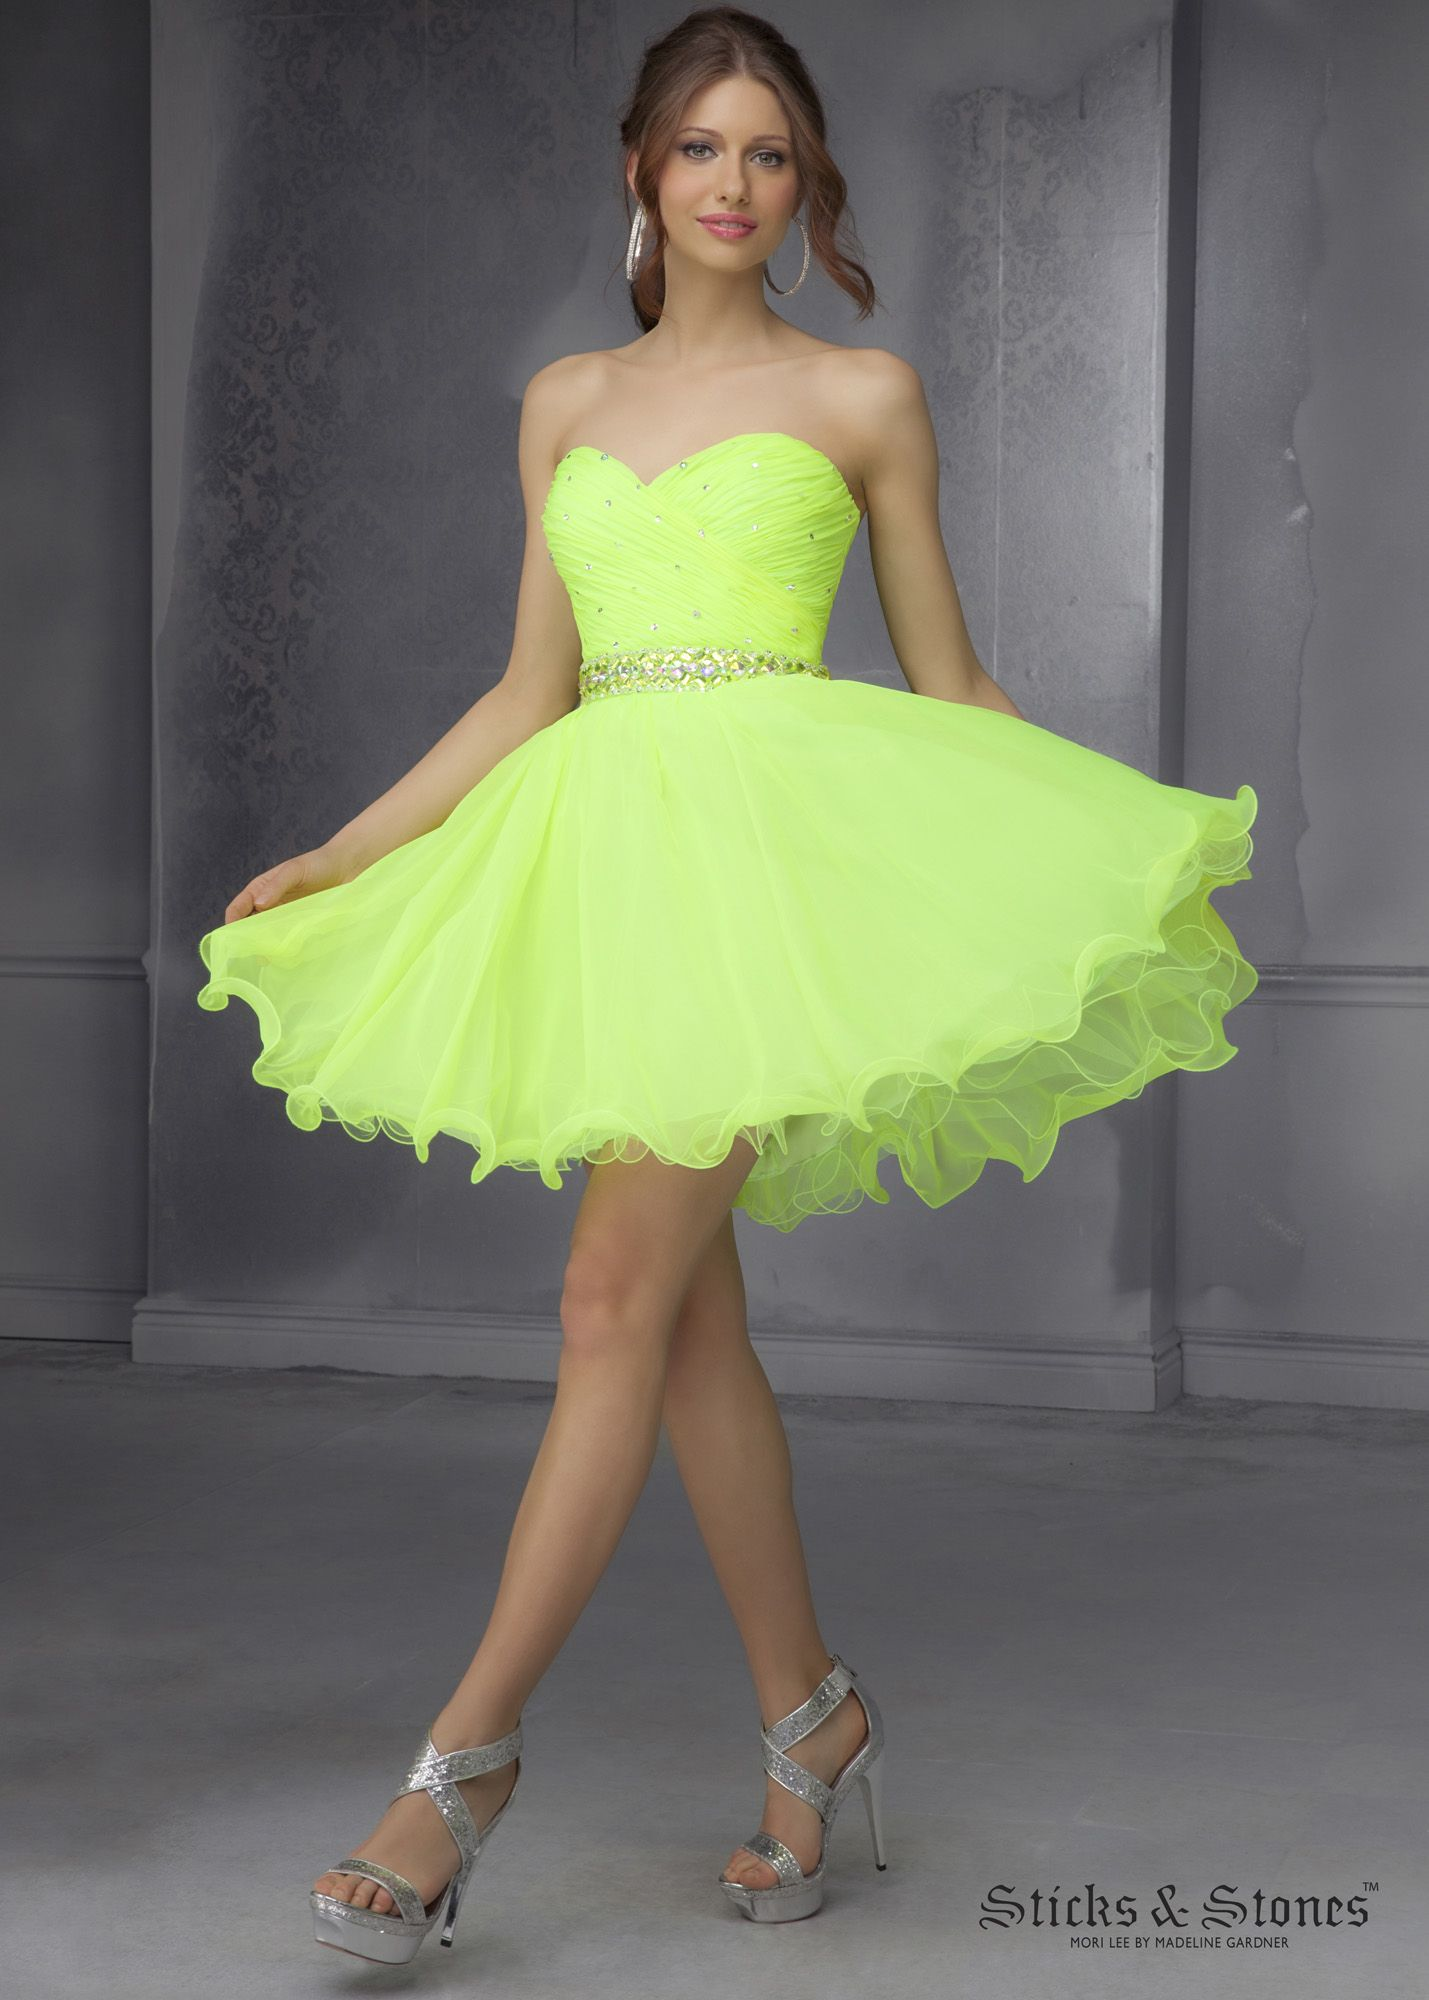 Perfect Short Neon Prom Dresses Collection - Wedding Dress Ideas ...